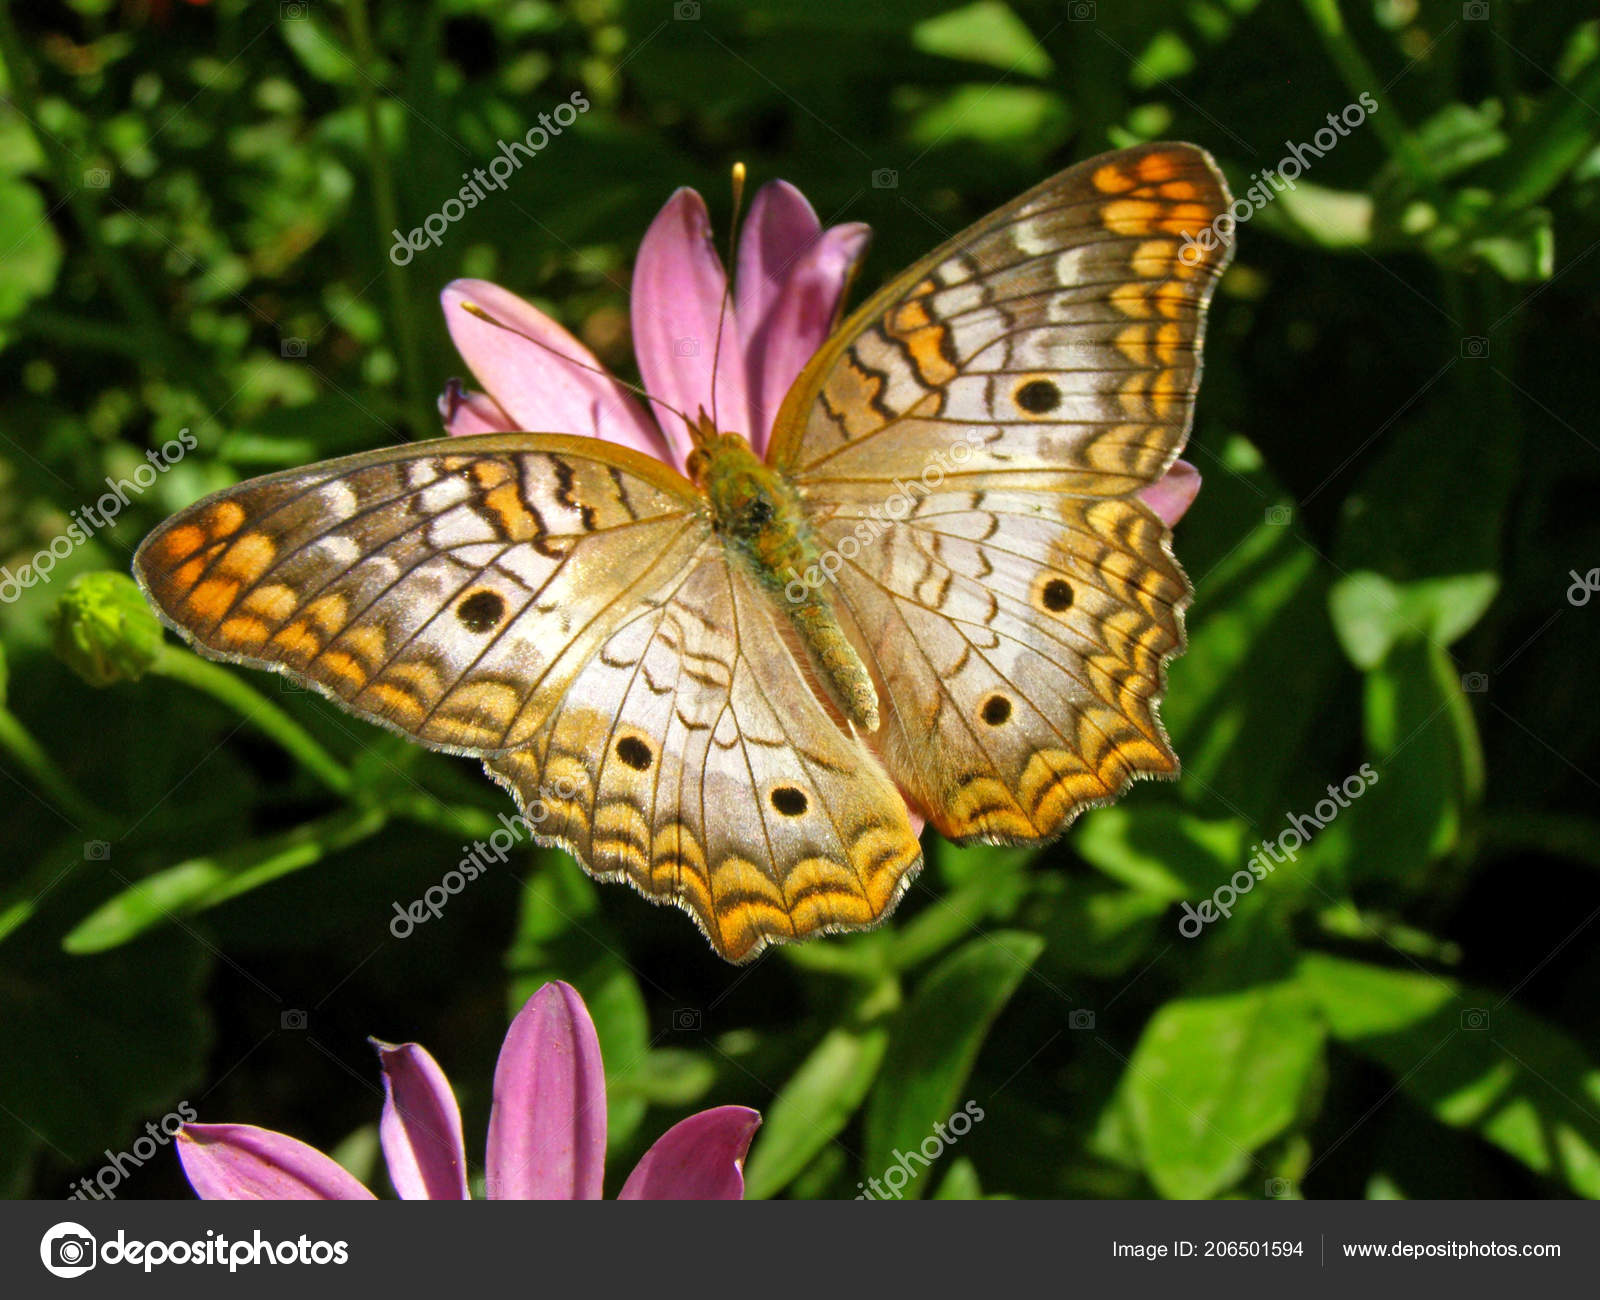 A White Peacock Butterfly On A Pink Flower In The Desert Botanical Garden  In Phoenix, Arizona.u2013 Stock Image